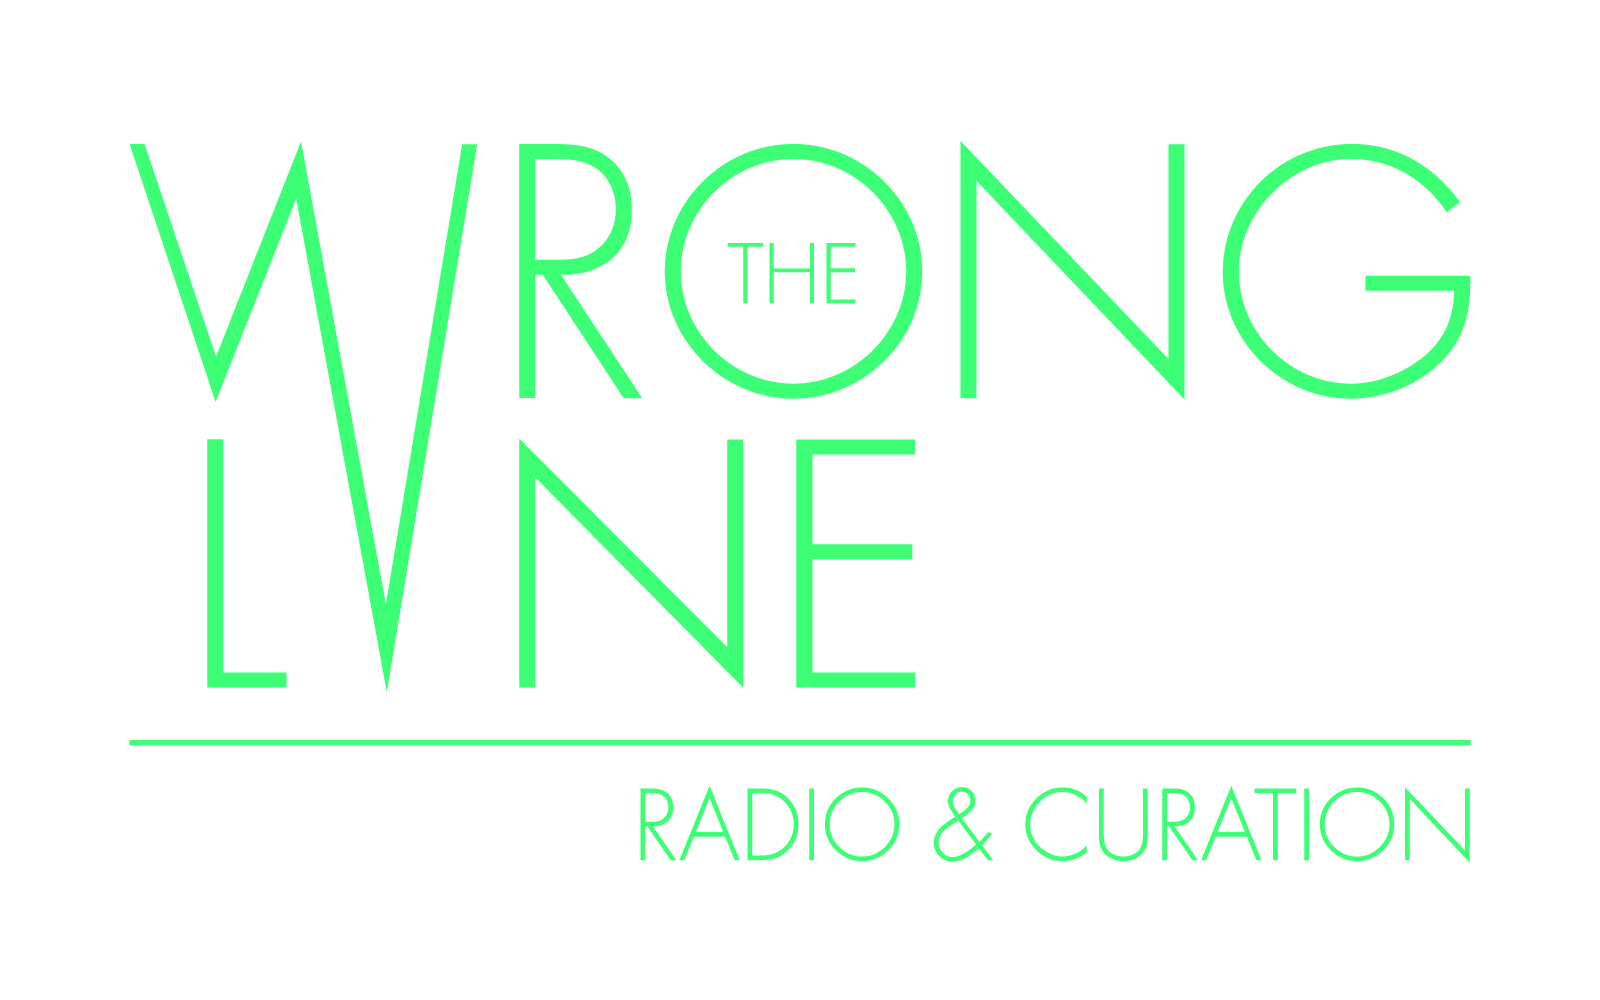 The Wrong Lane radio and curation